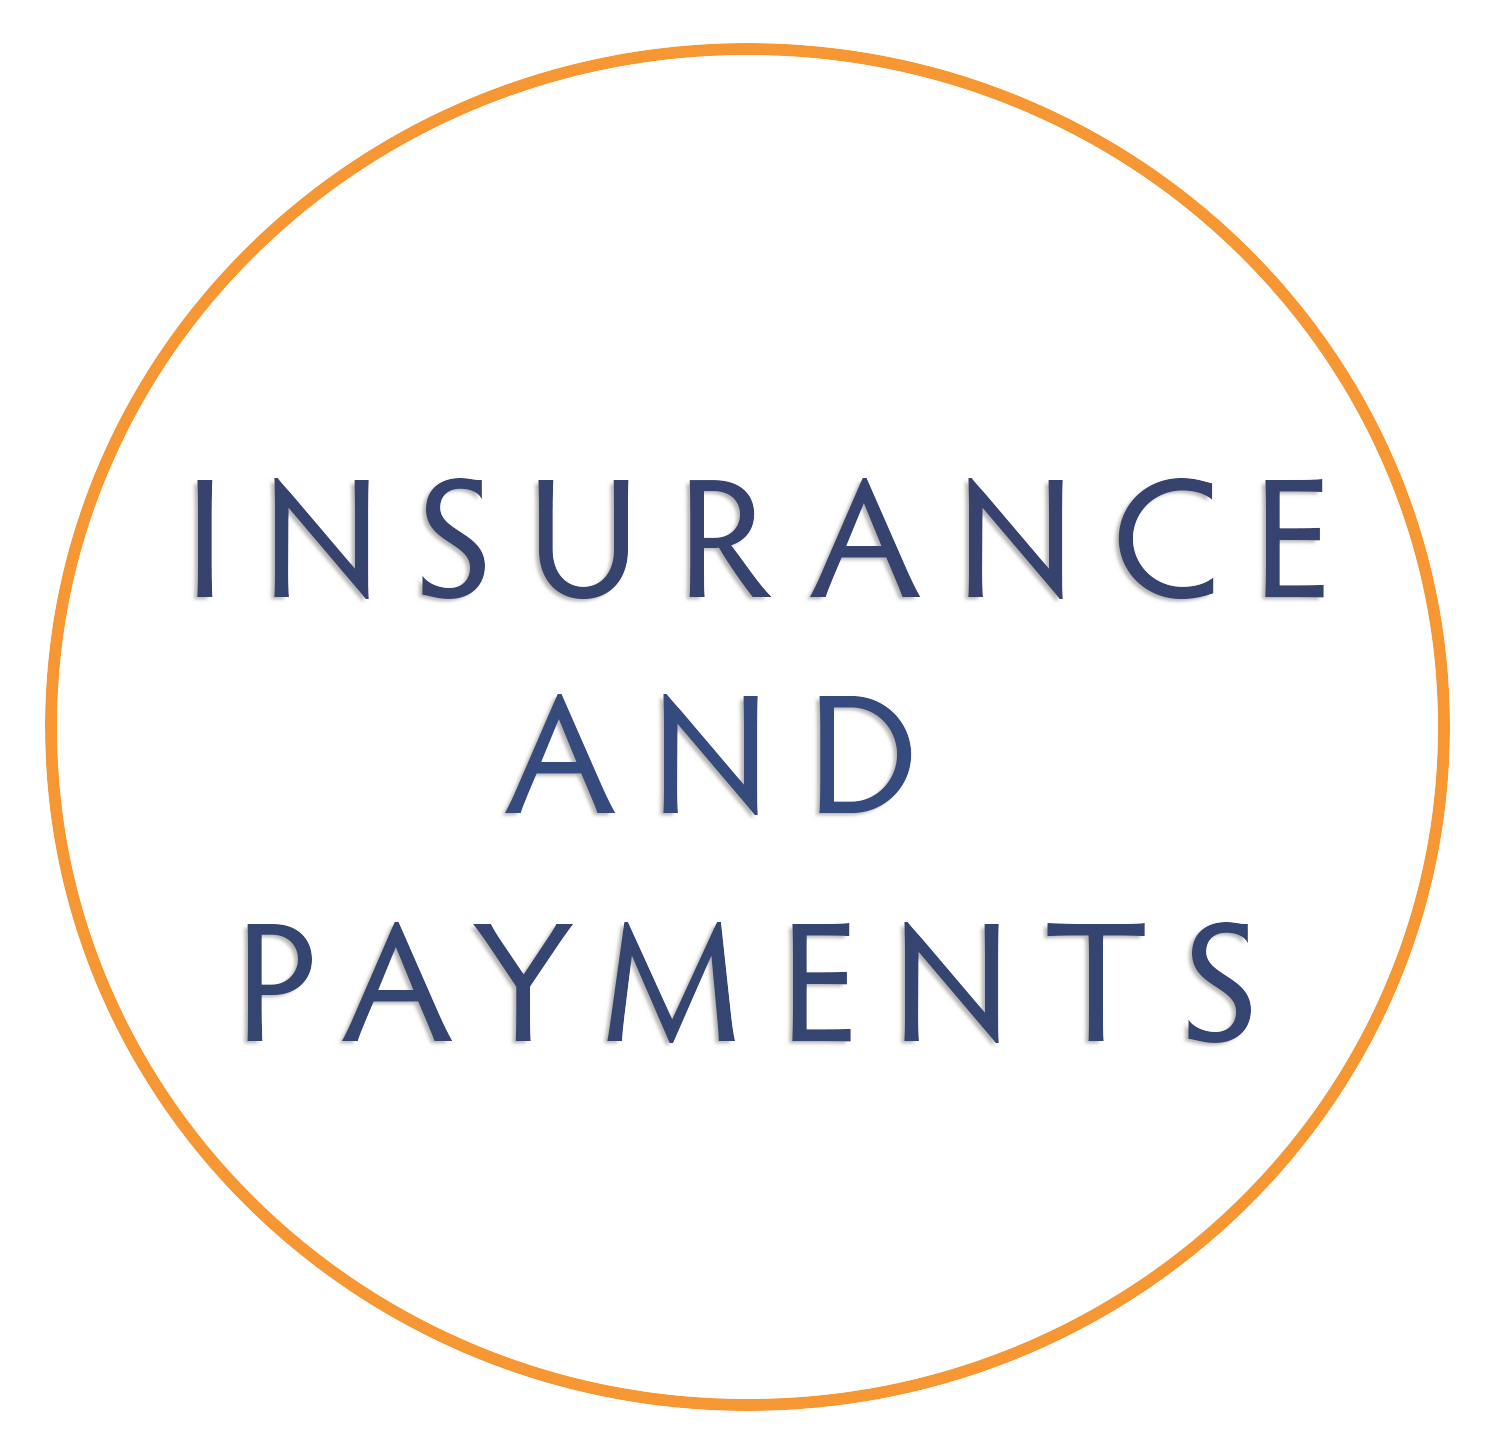 Insurance_and_payments_Circle.png